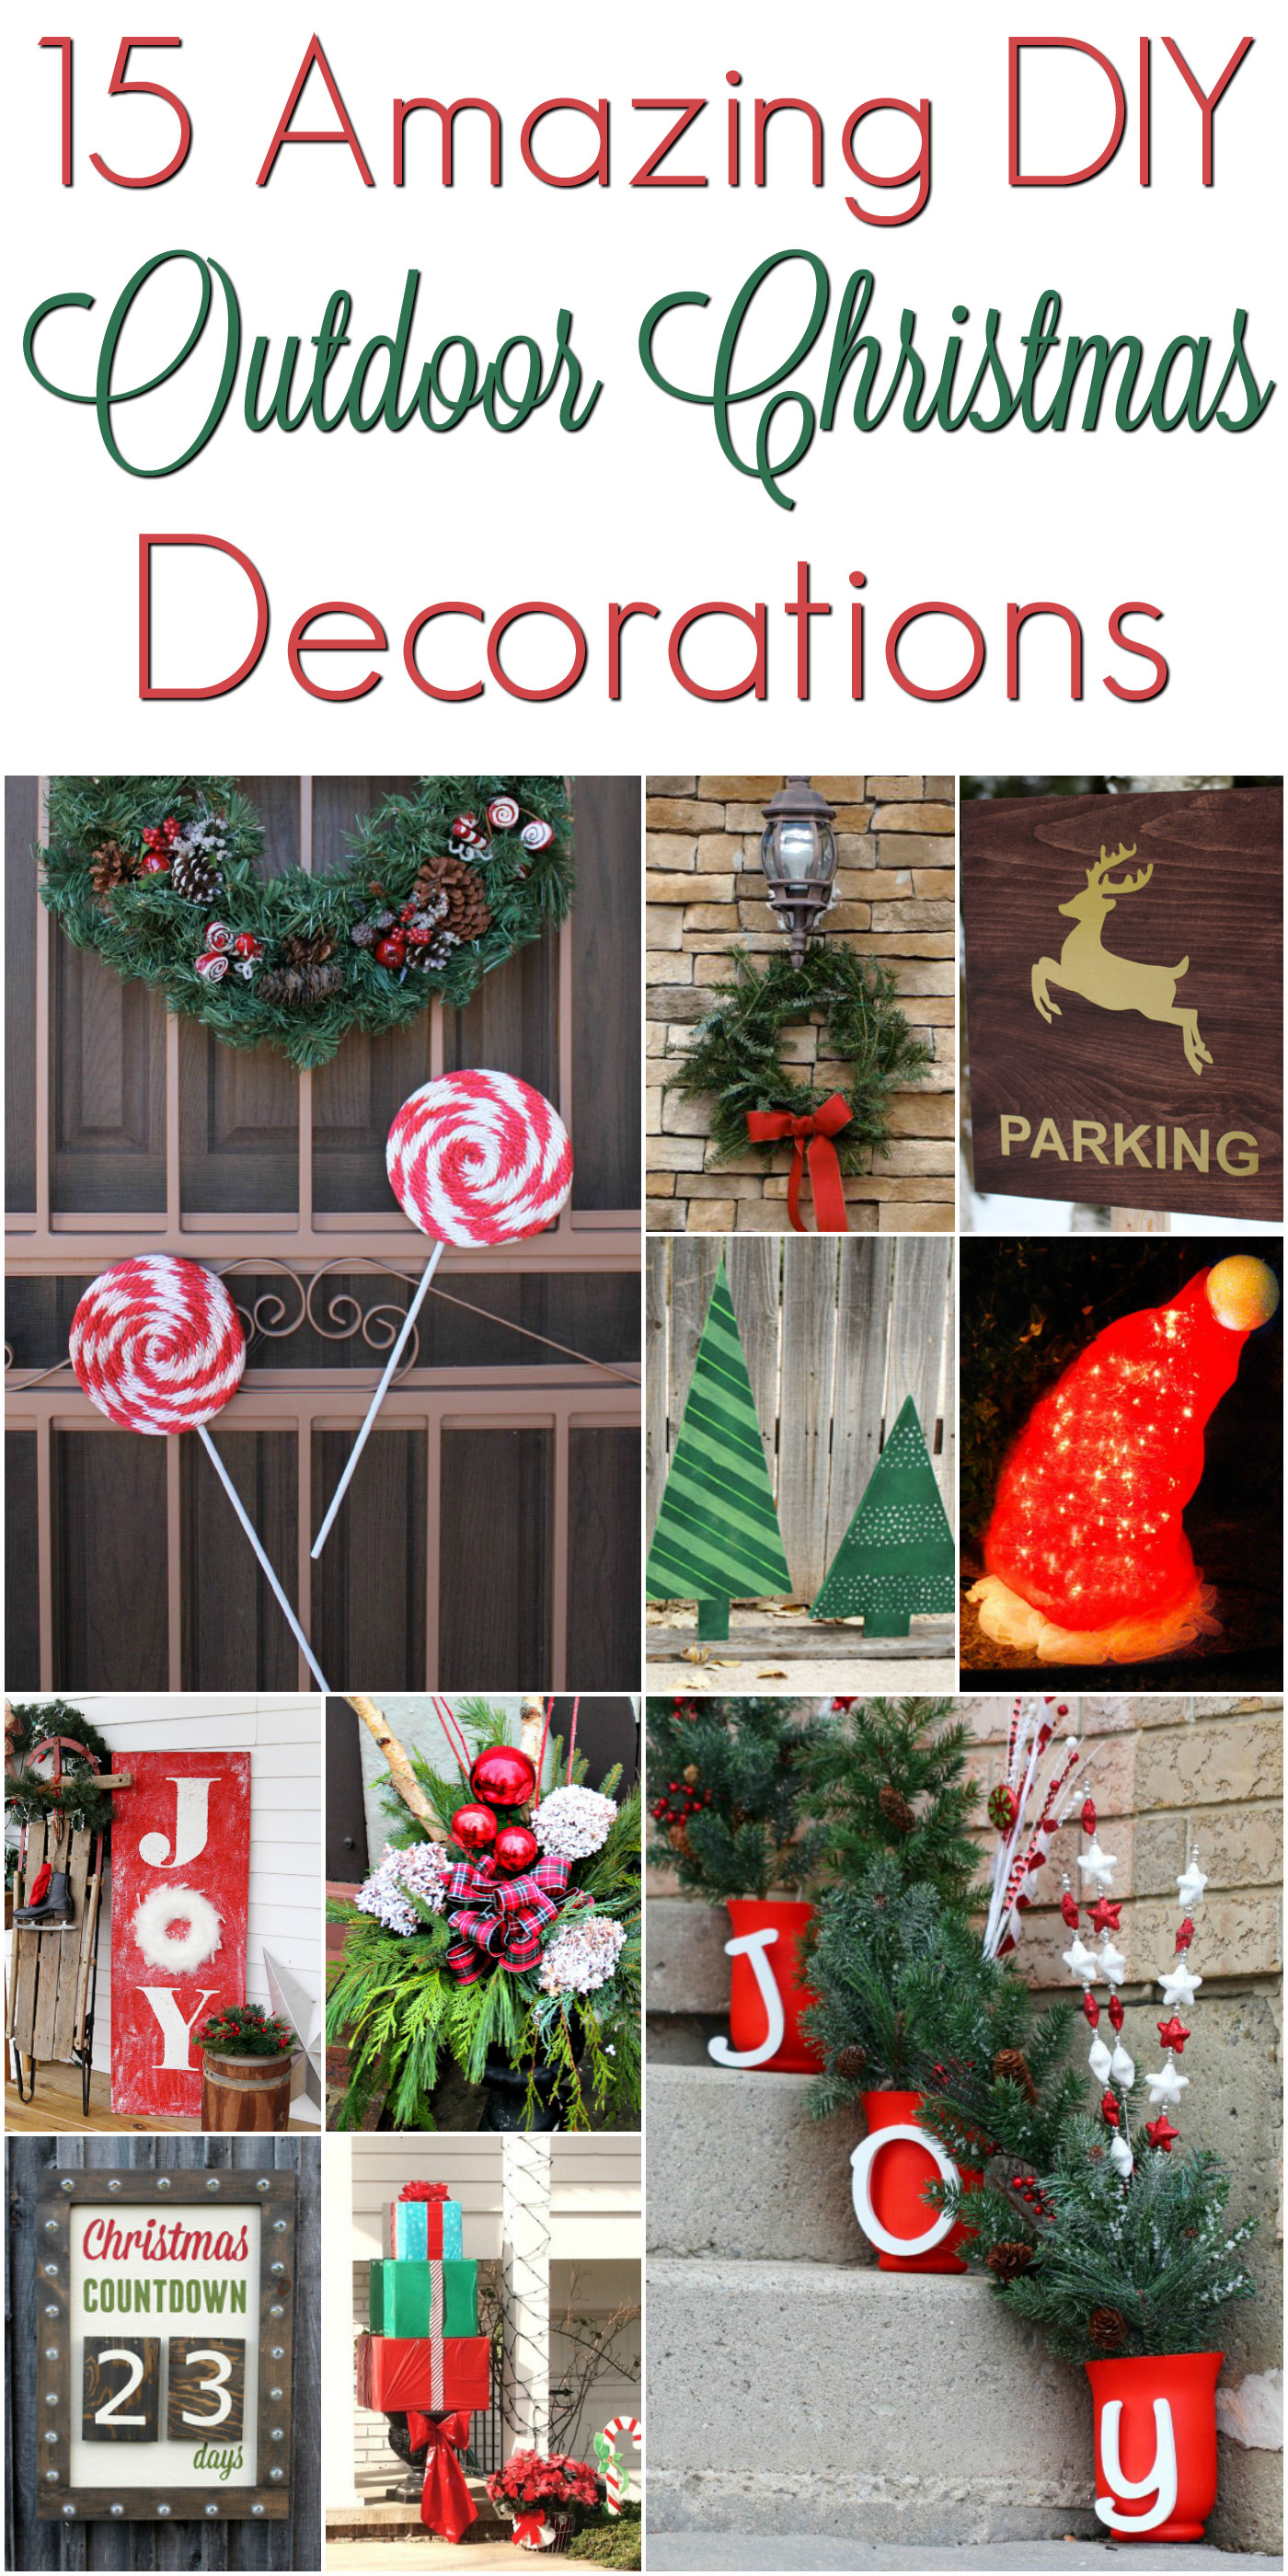 Best ideas about DIY Outdoor Lawn Christmas Decorations . Save or Pin DIY Christmas Outdoor Decorations ChristmasDecorations Now.